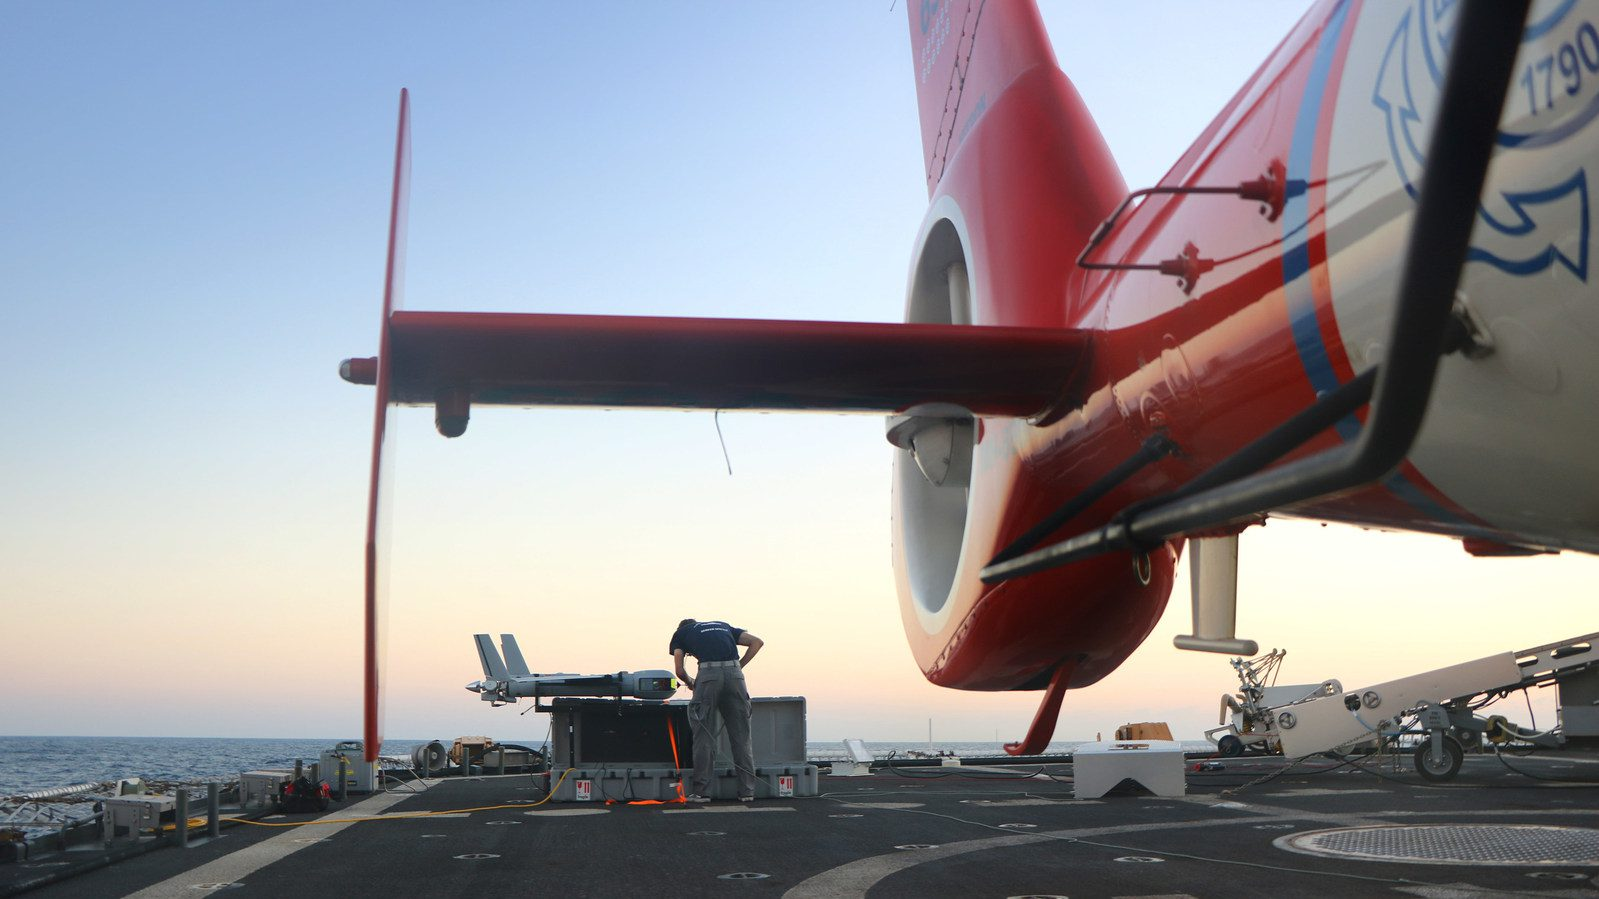 Insitu's ScanEagle unmanned air vehicle helped theUS Coast Guard intercept more than six tons of cocaine during a recent deployment aboard USCGC STRATTON. The event marked the first time a USCG cutter used a small UAS for an entire patrol. (PRNewsfoto/Insitu)